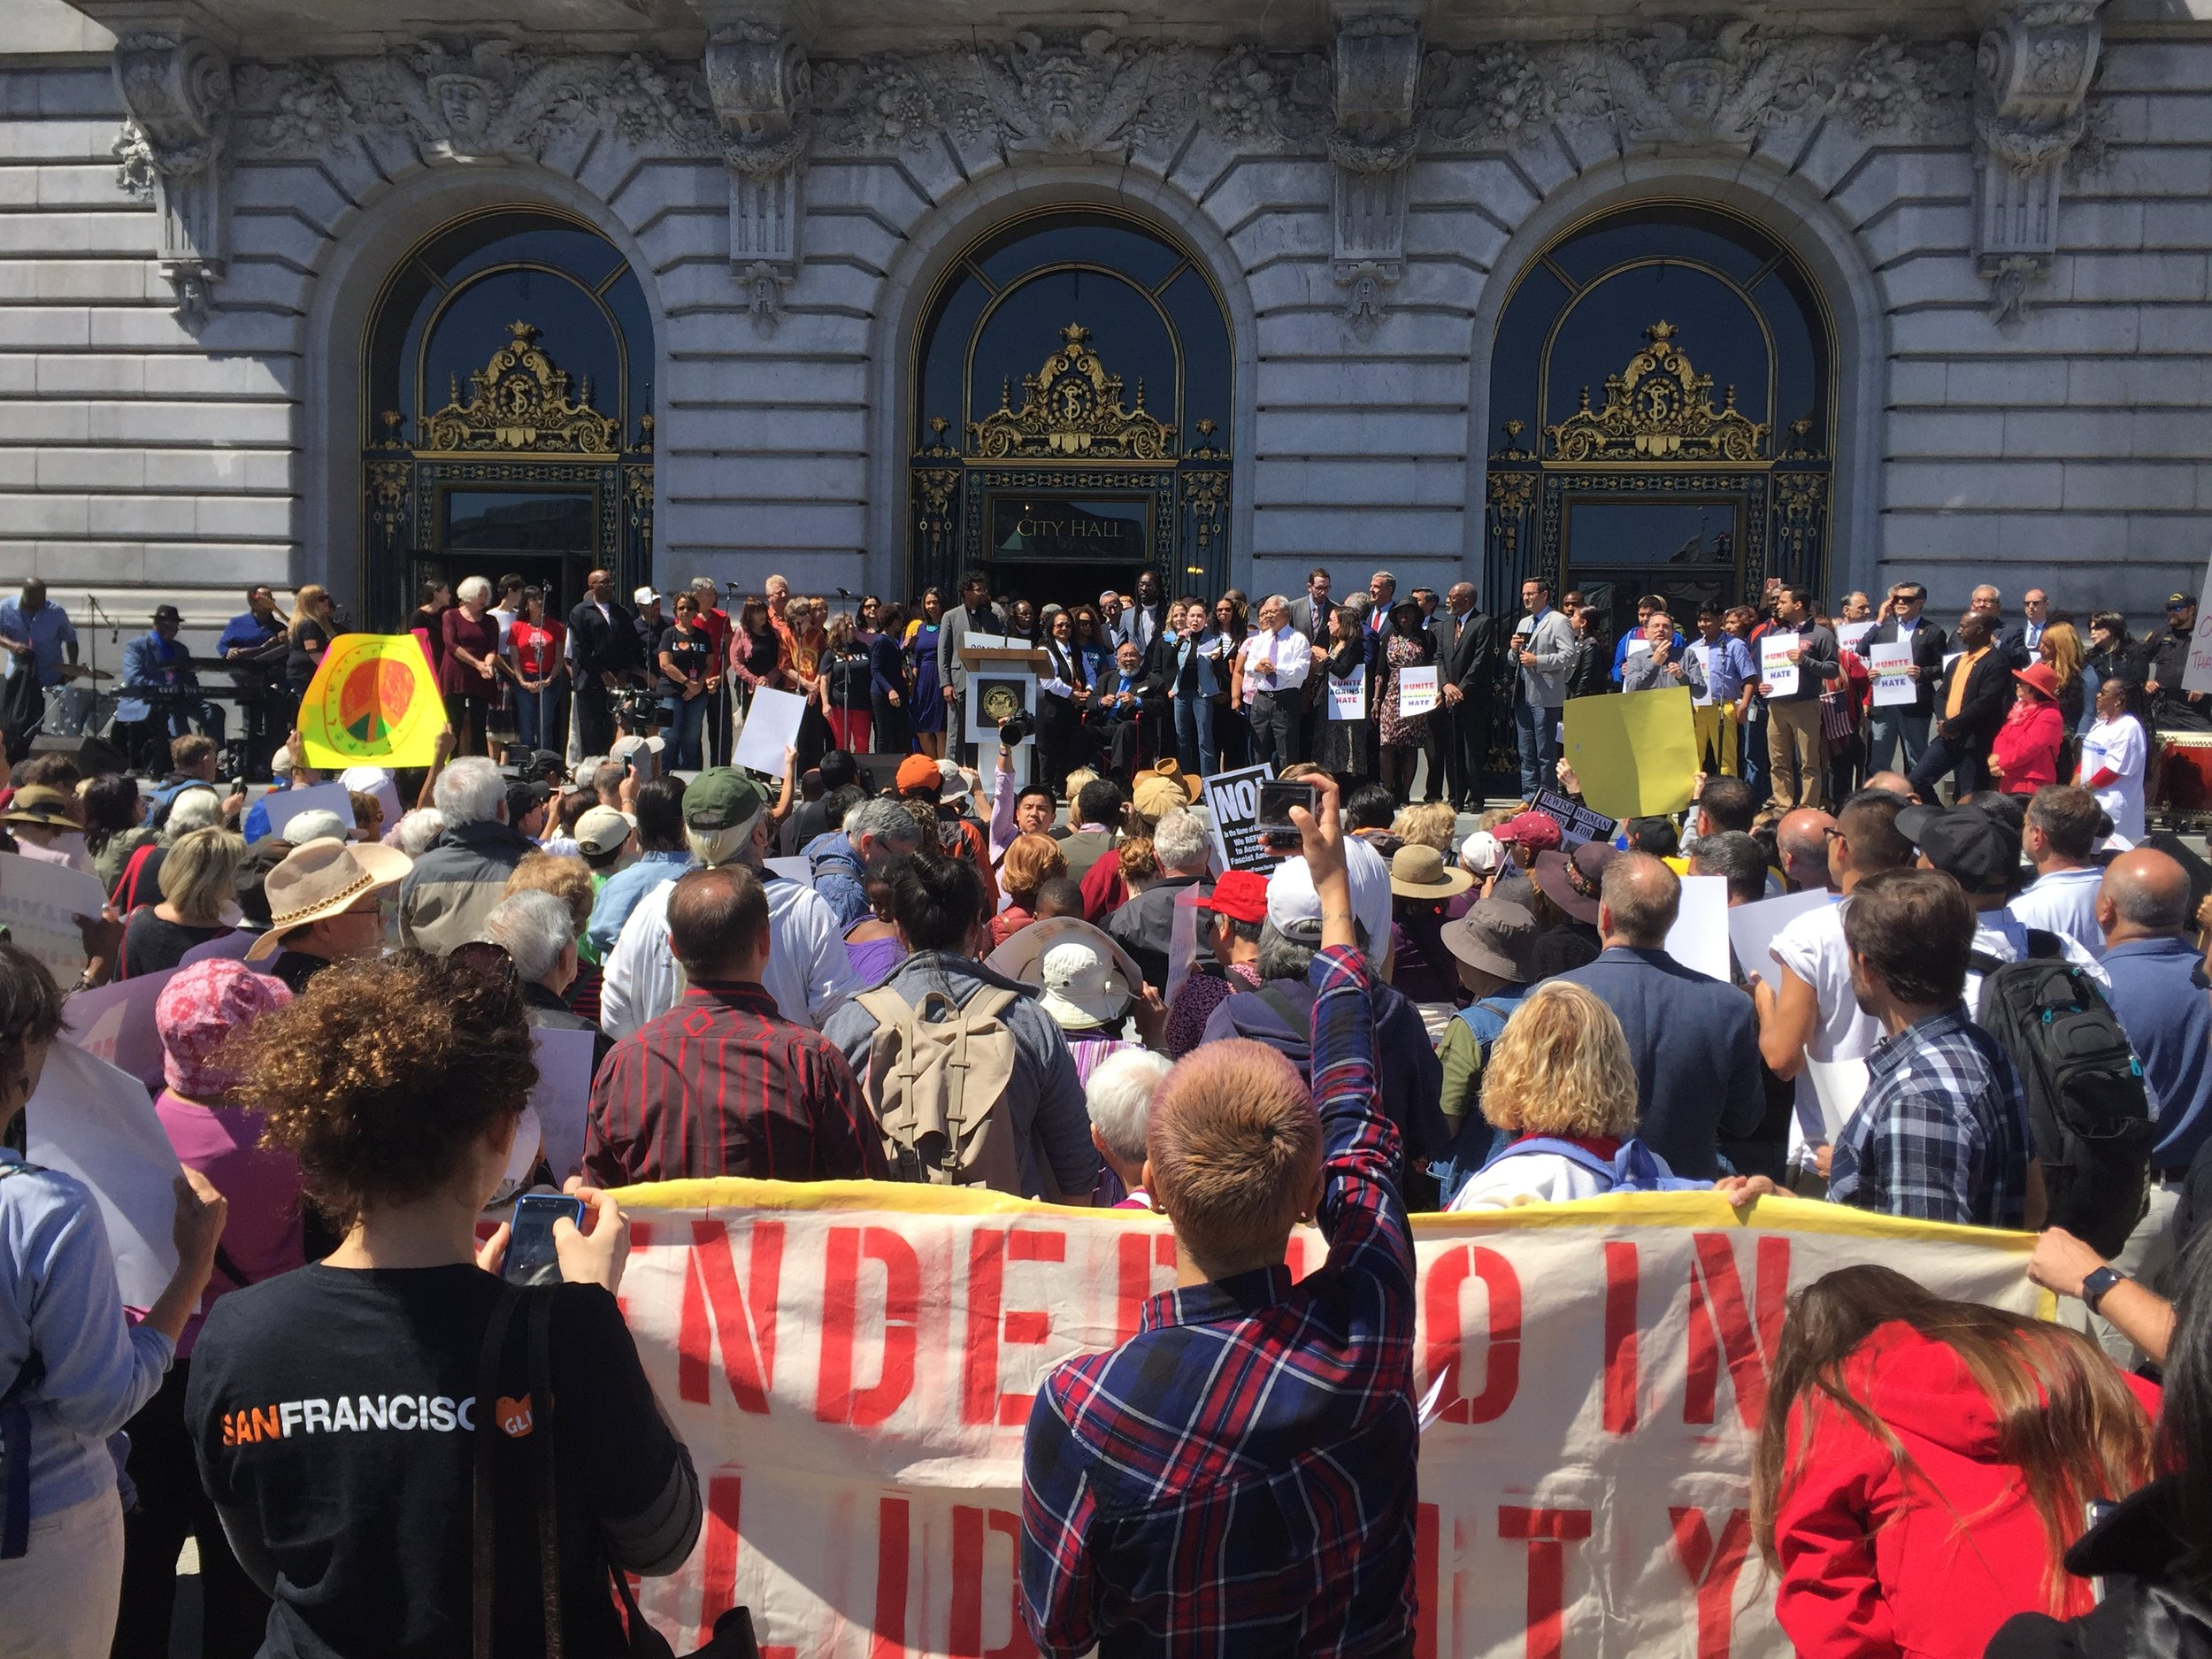 Photo: GLIDE clergy and leadership including founders Cecil Williams and Janice Mirikatani rally on the steps of City Hall with late Mayor Ed Lee to show support for immigrants amongst threats to sanctuary cities from Trump administration.